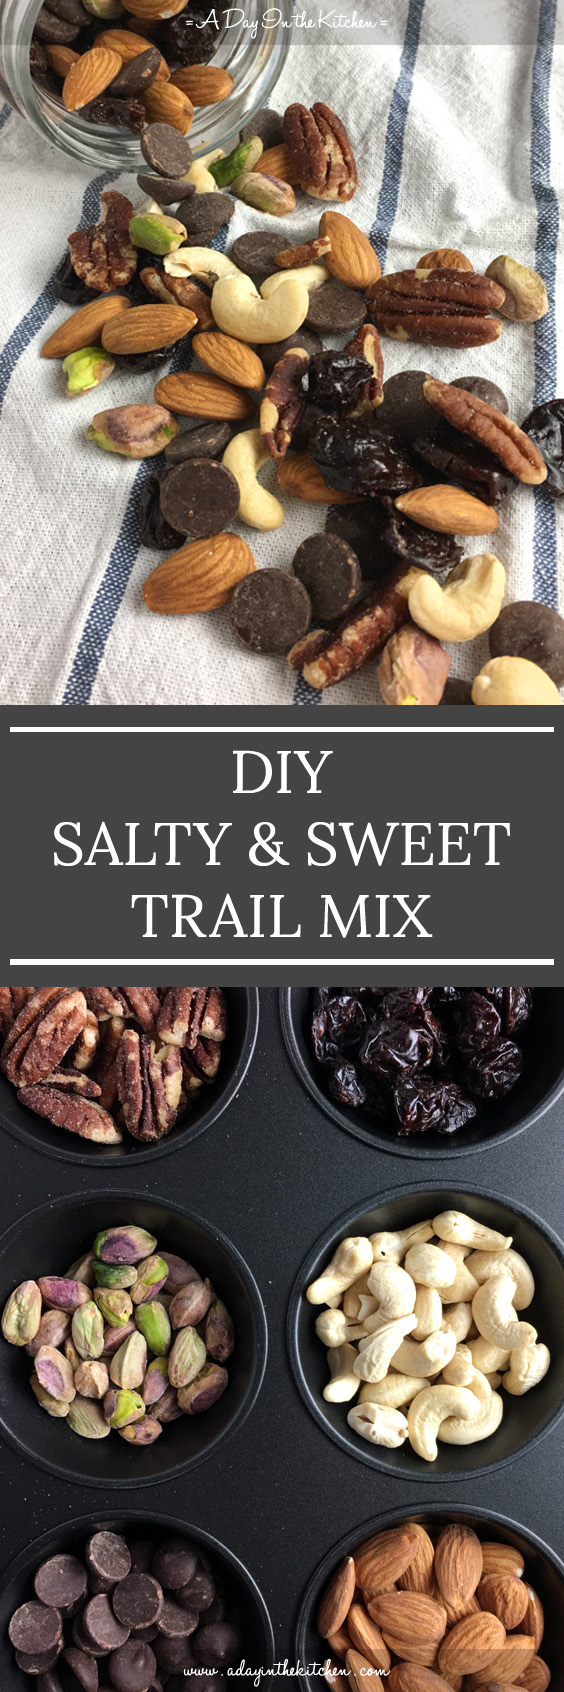 Stop buying big bags of trail mix with ingredients you don't like, and try DIY Salty & Sweet Trail Mix with only your favorites!